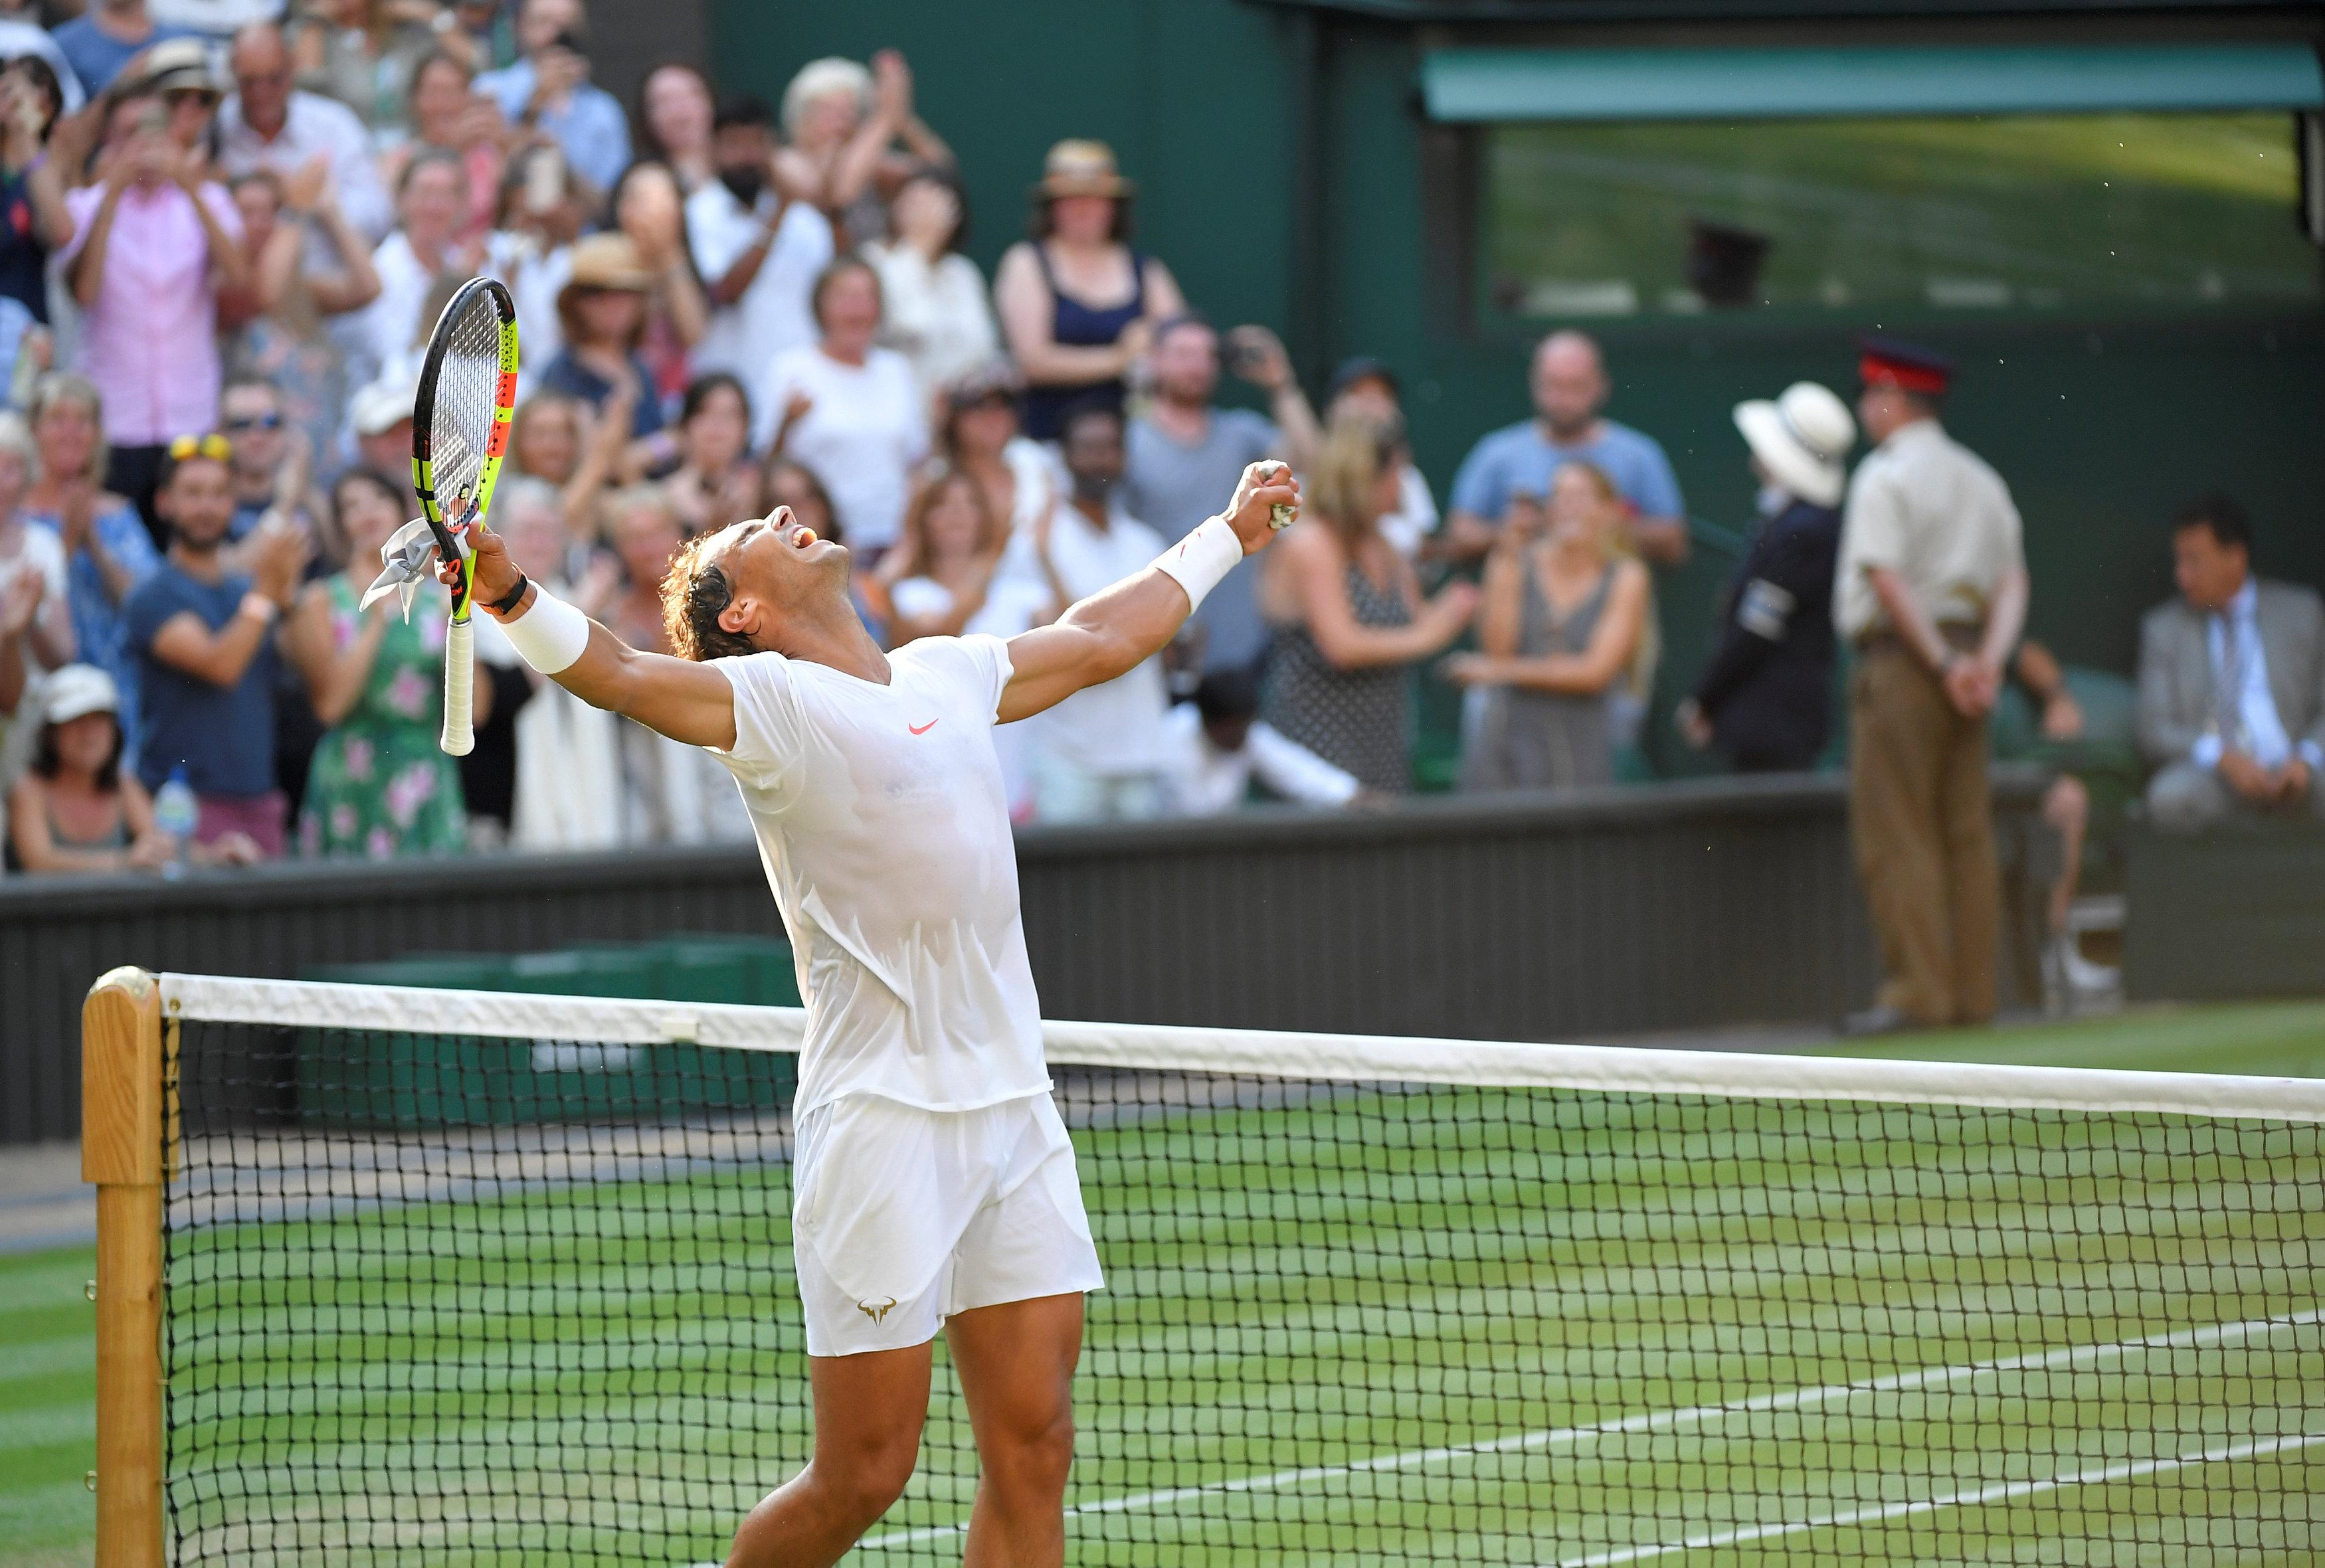 Rafa Nadal is through to the quarter-finals and can end eight years of hurt at Wimbledon